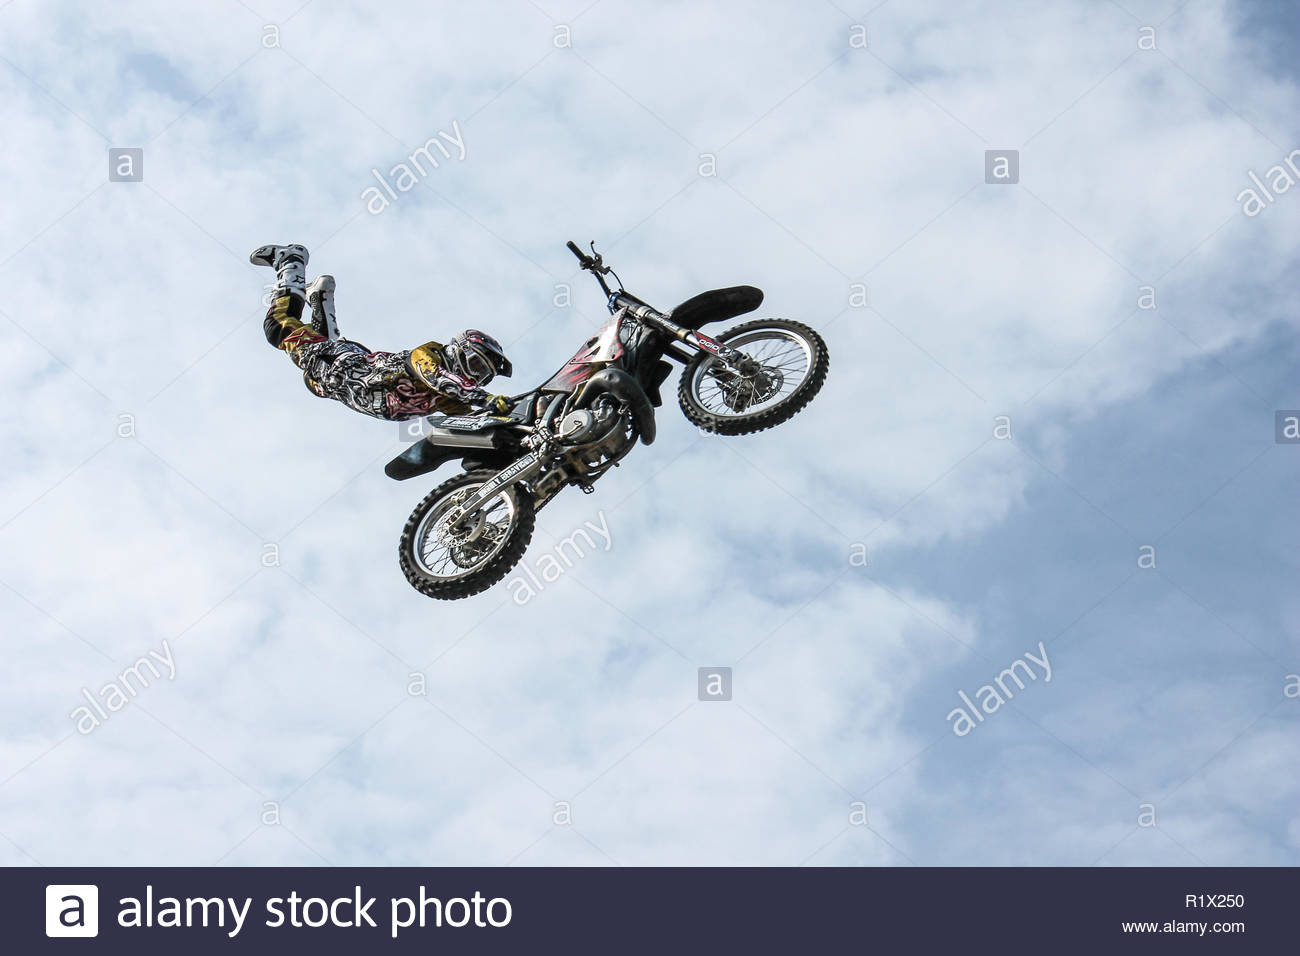 Man With Off Road Motorcycle Doing Tricks - Stock Image